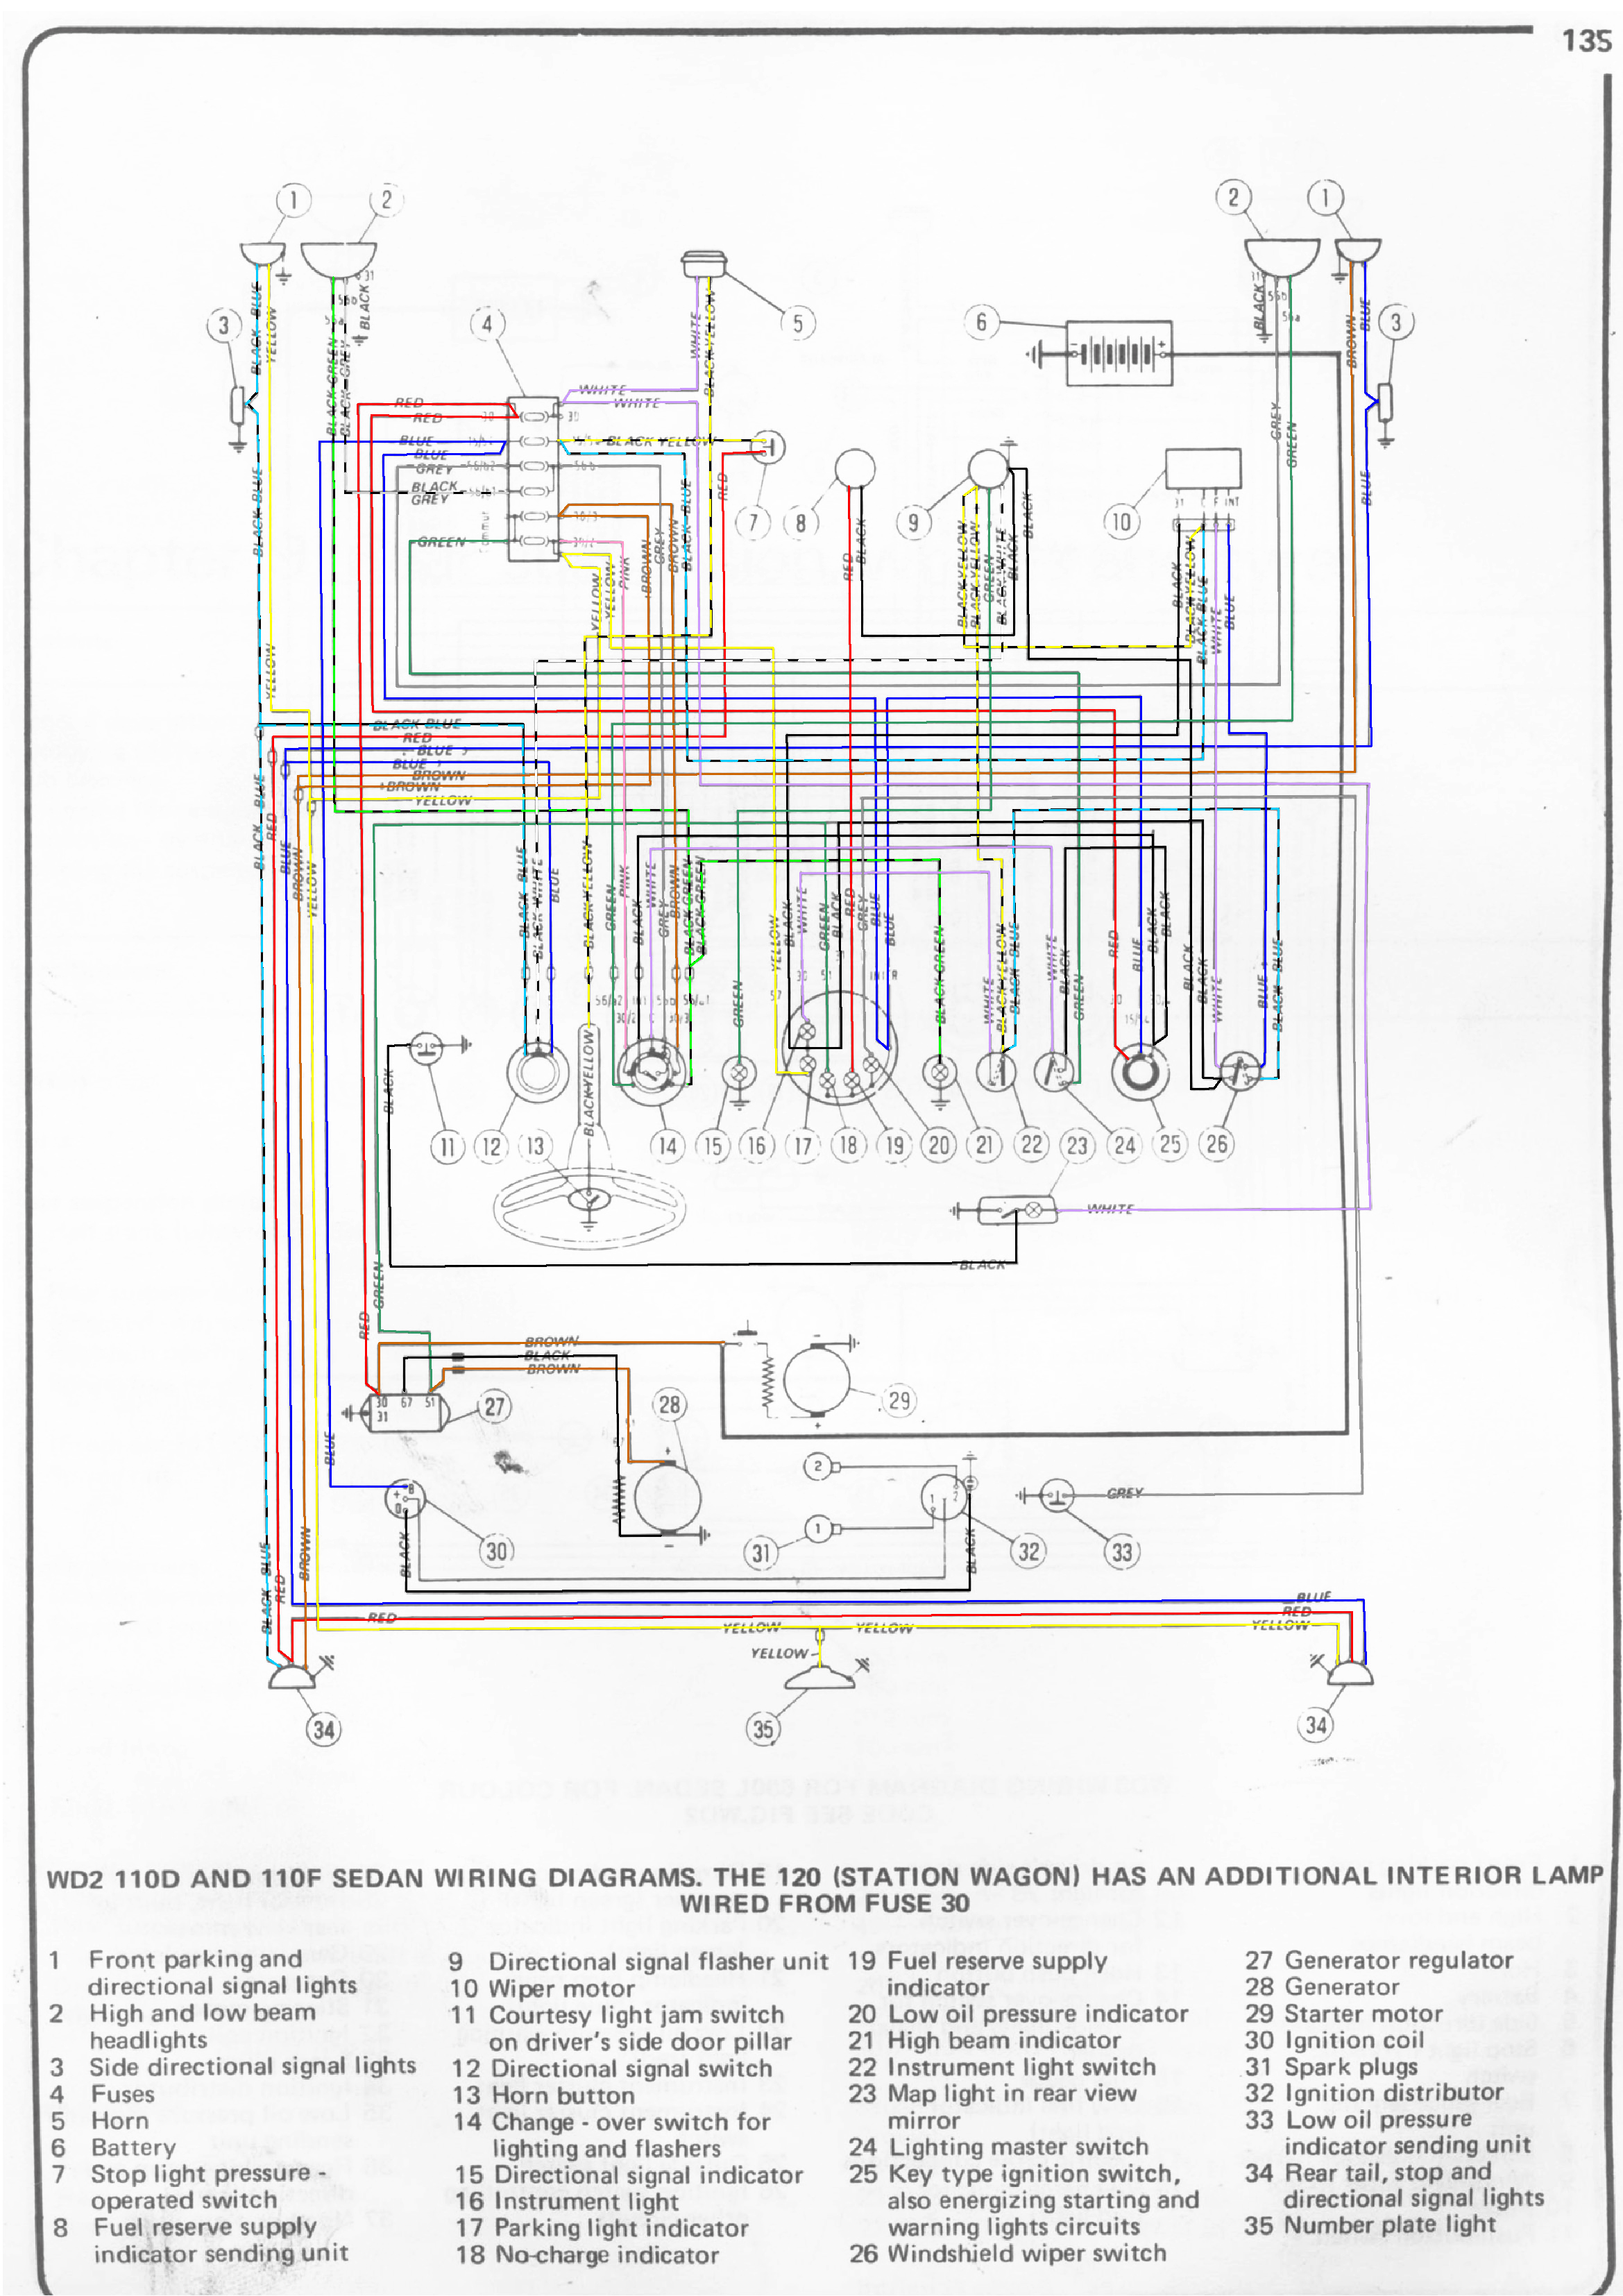 small resolution of fiat 500l wiring harness fiat 500 ferrari edition wiring 2012 fiat 500 wiring diagram fiat 124